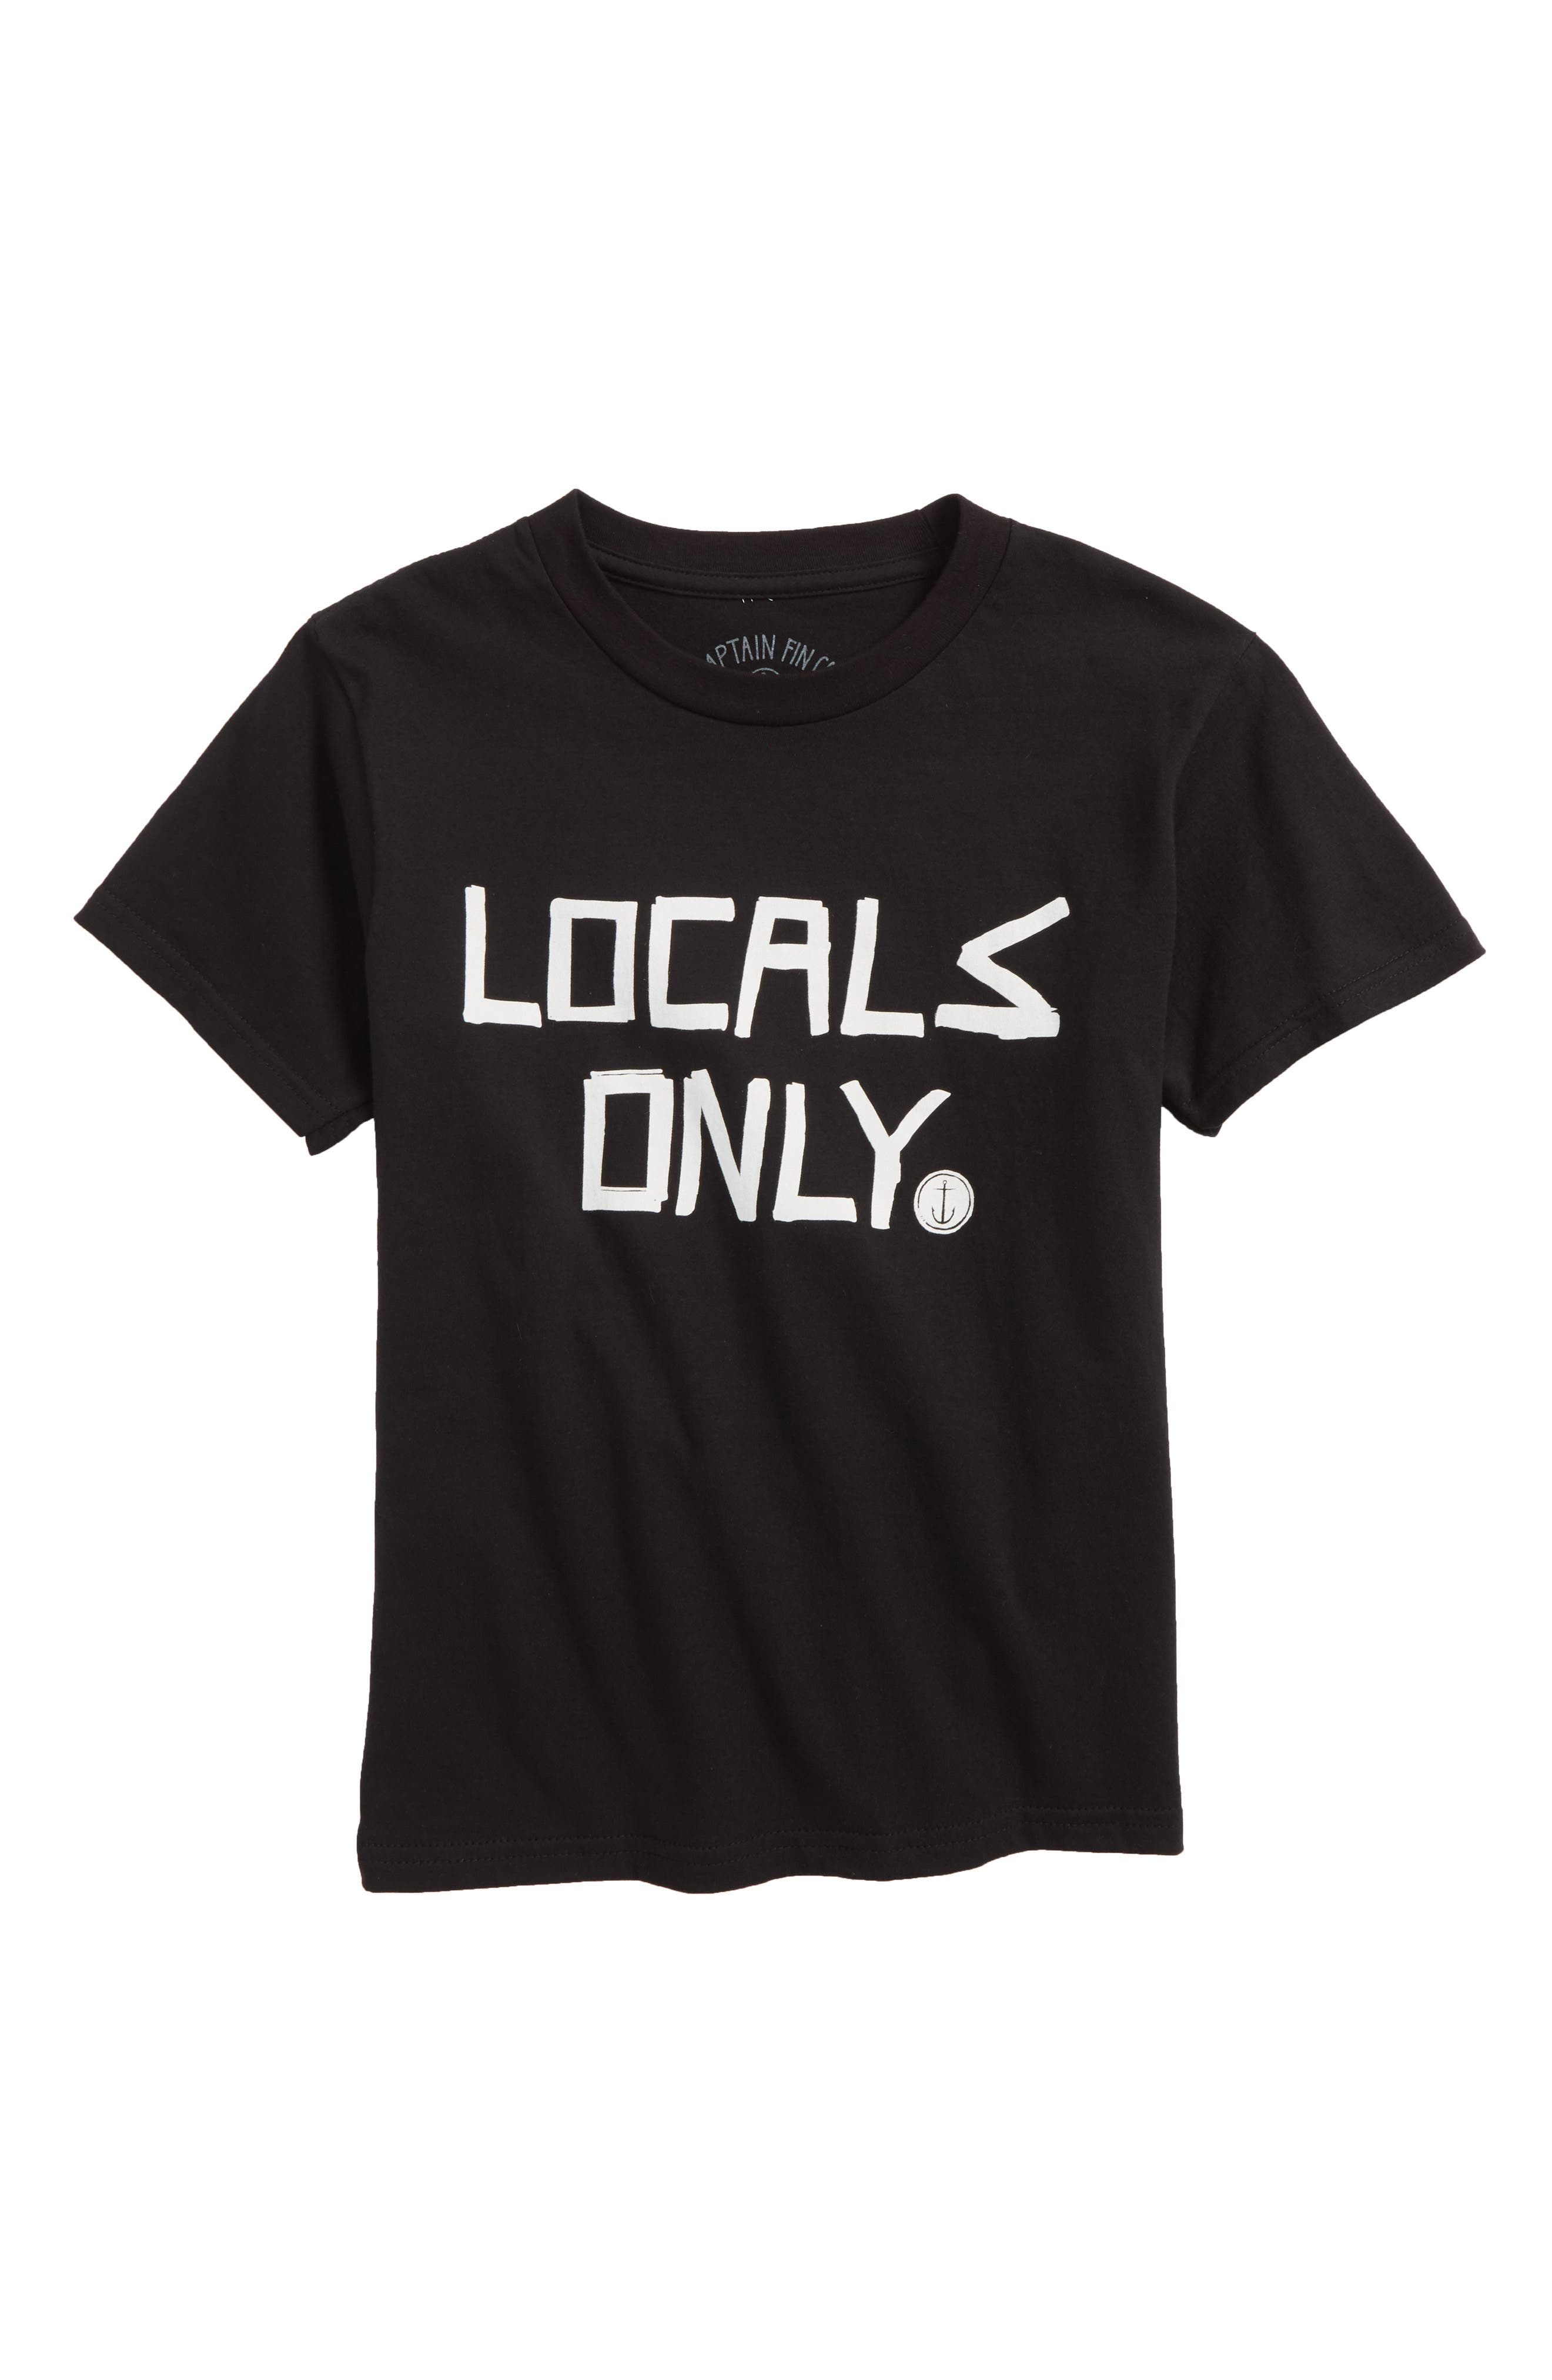 Locals Only T-Shirt,                             Main thumbnail 1, color,                             Black